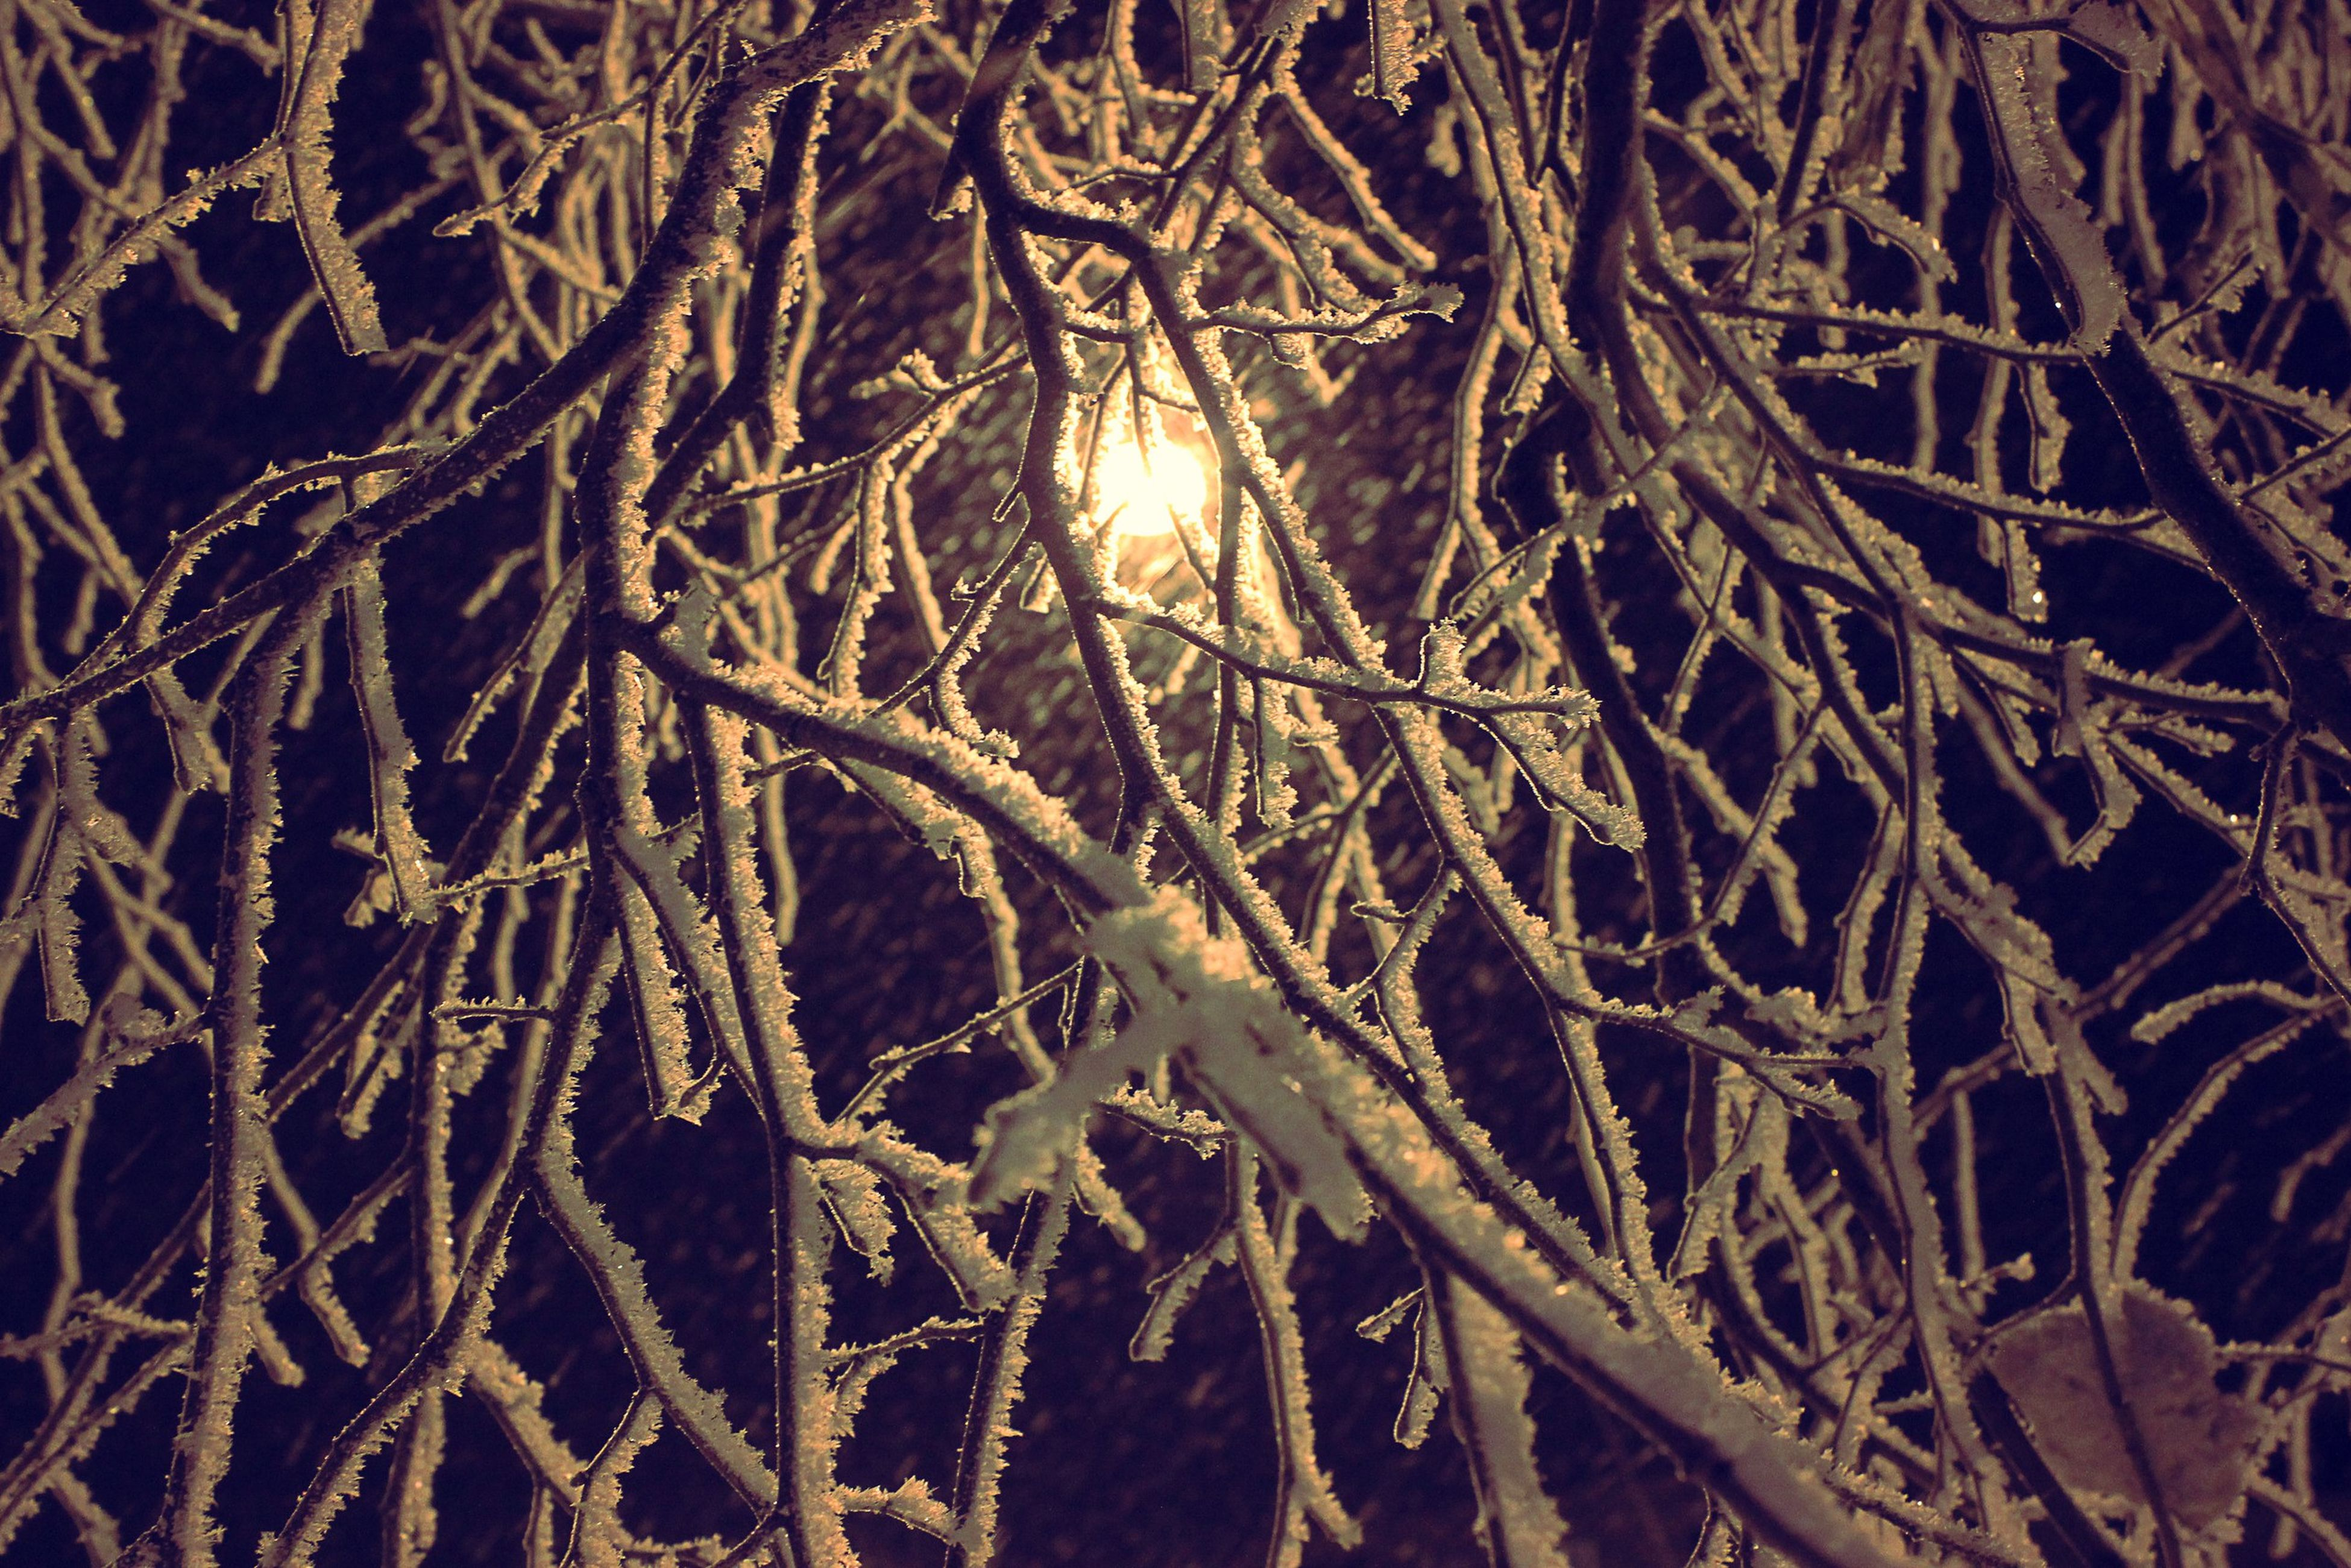 branch, bare tree, night, tree, low angle view, tranquility, nature, full frame, backgrounds, beauty in nature, winter, silhouette, outdoors, growth, no people, cold temperature, scenics, illuminated, sky, close-up